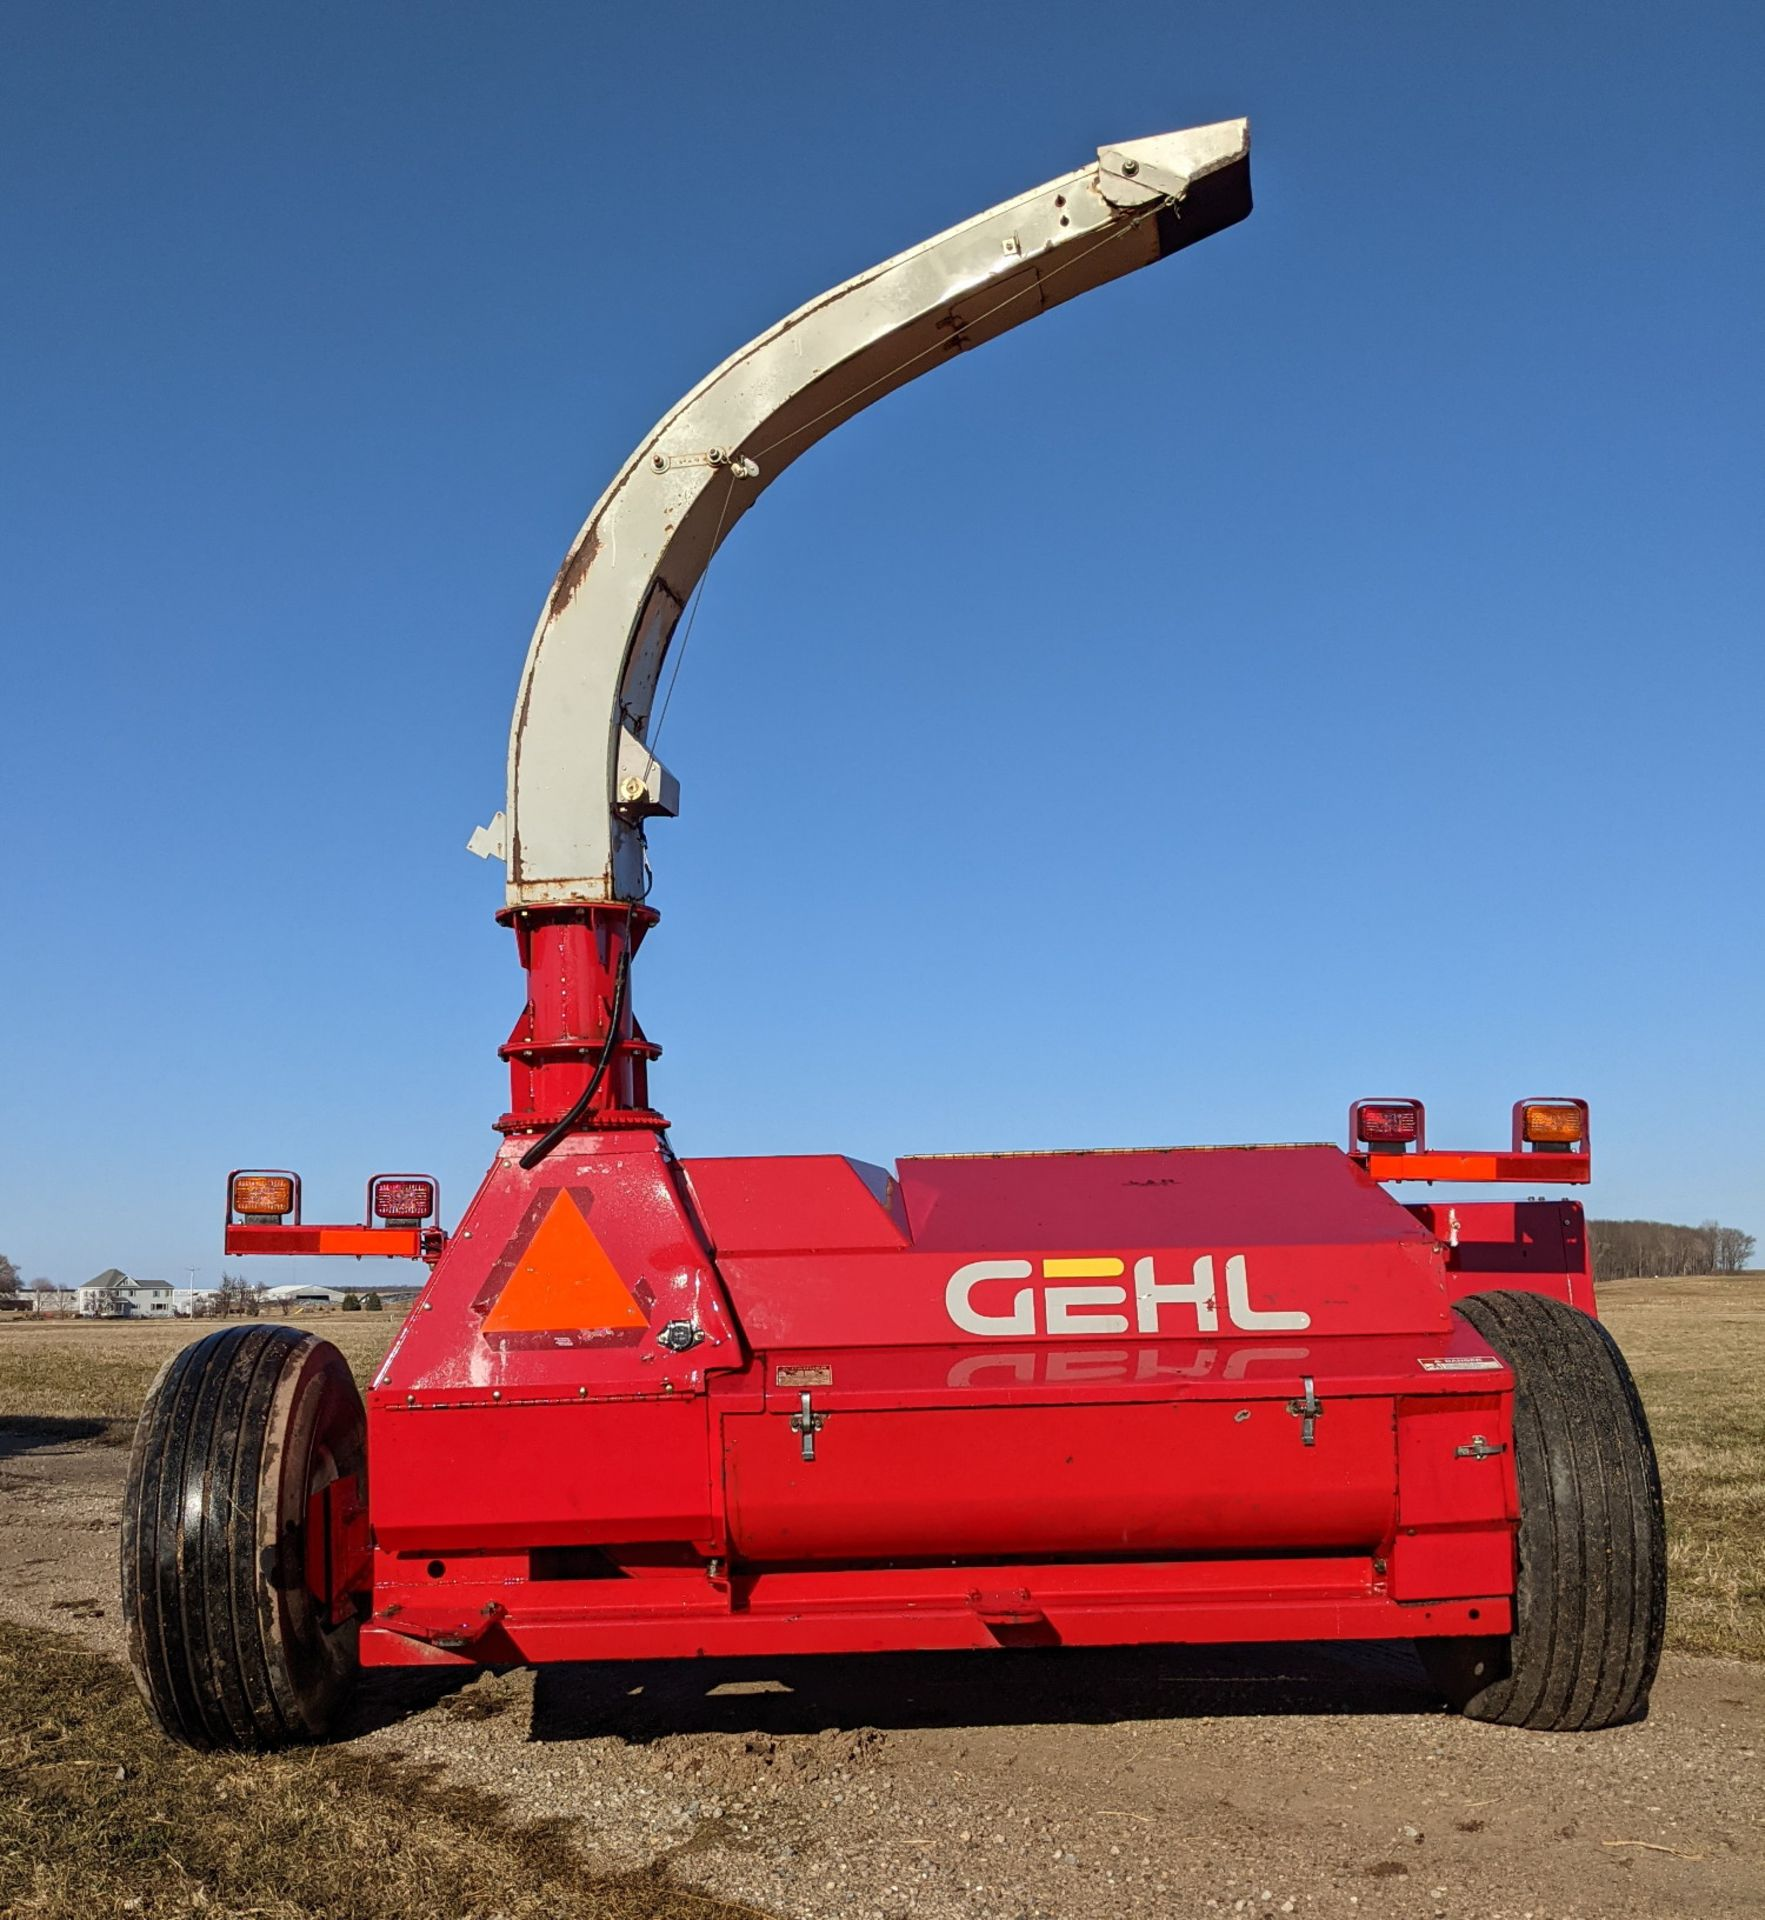 GEHL 1085 FORAGE CHOPPER W/WIDE HAYHEAD - Image 3 of 8